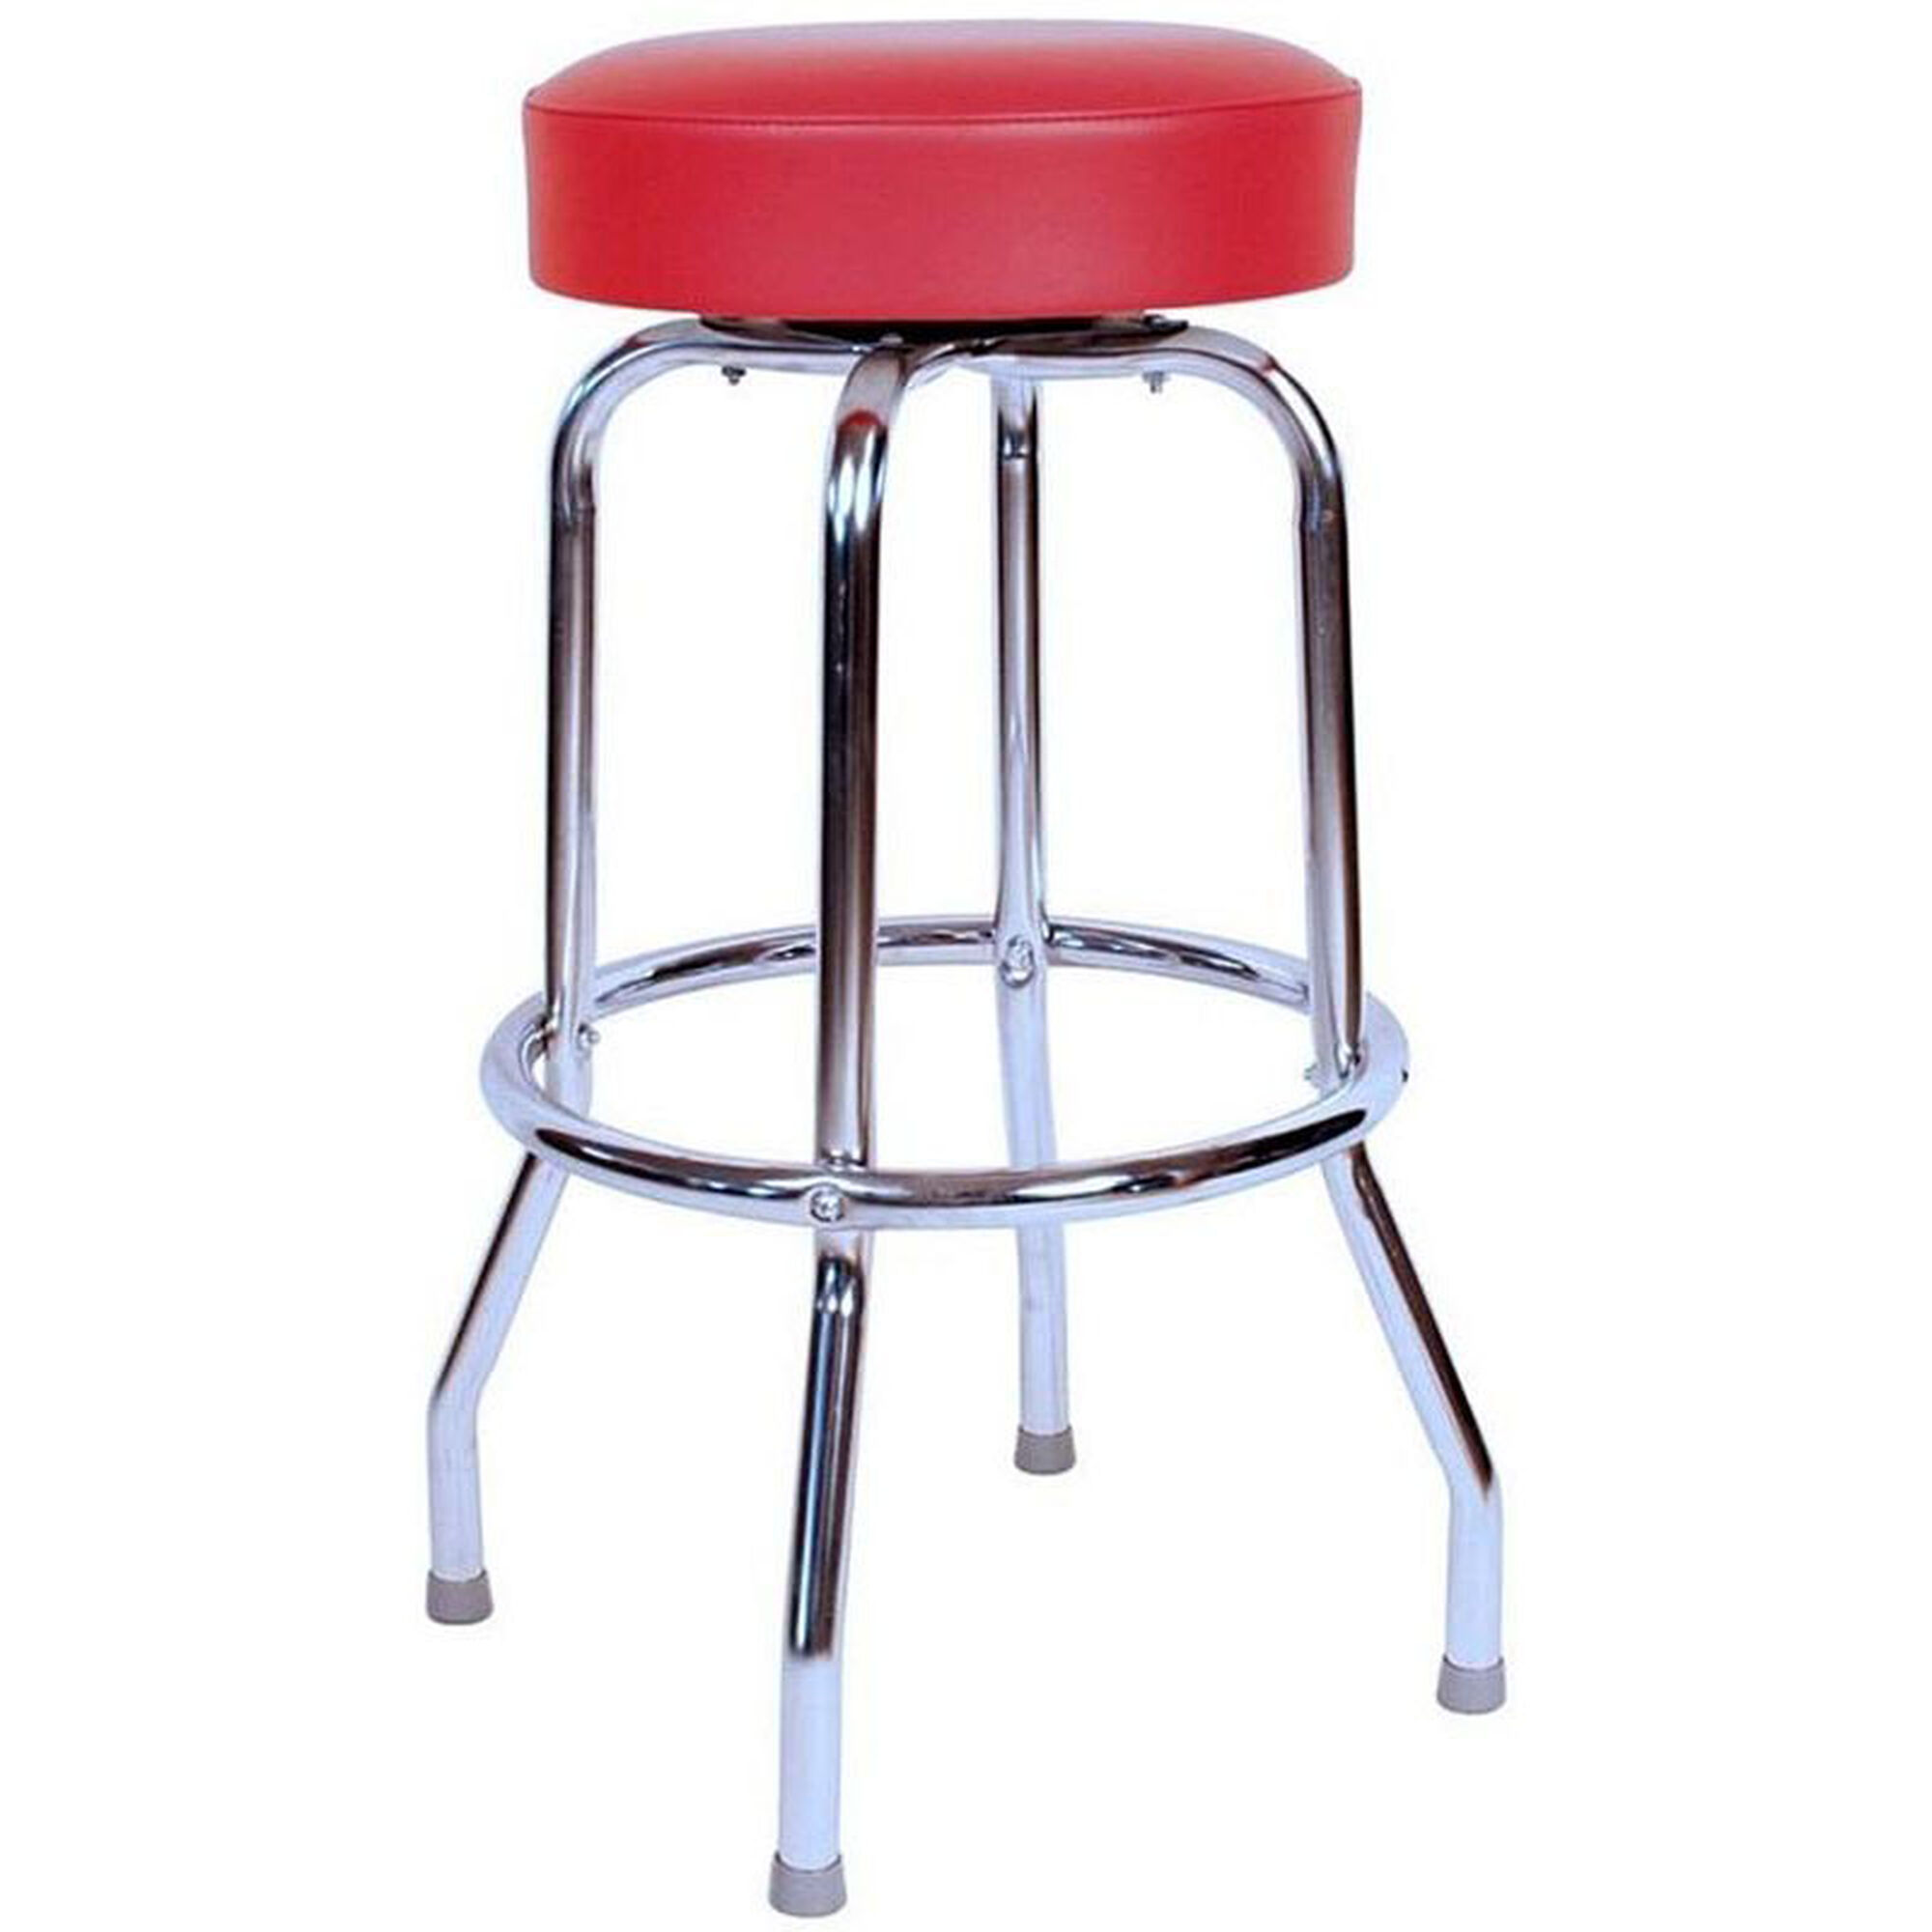 Fantastic 50S Retro Backless 30H Swivel Bar Stool With Chrome Frame And Padded Seat Red Vinyl Andrewgaddart Wooden Chair Designs For Living Room Andrewgaddartcom